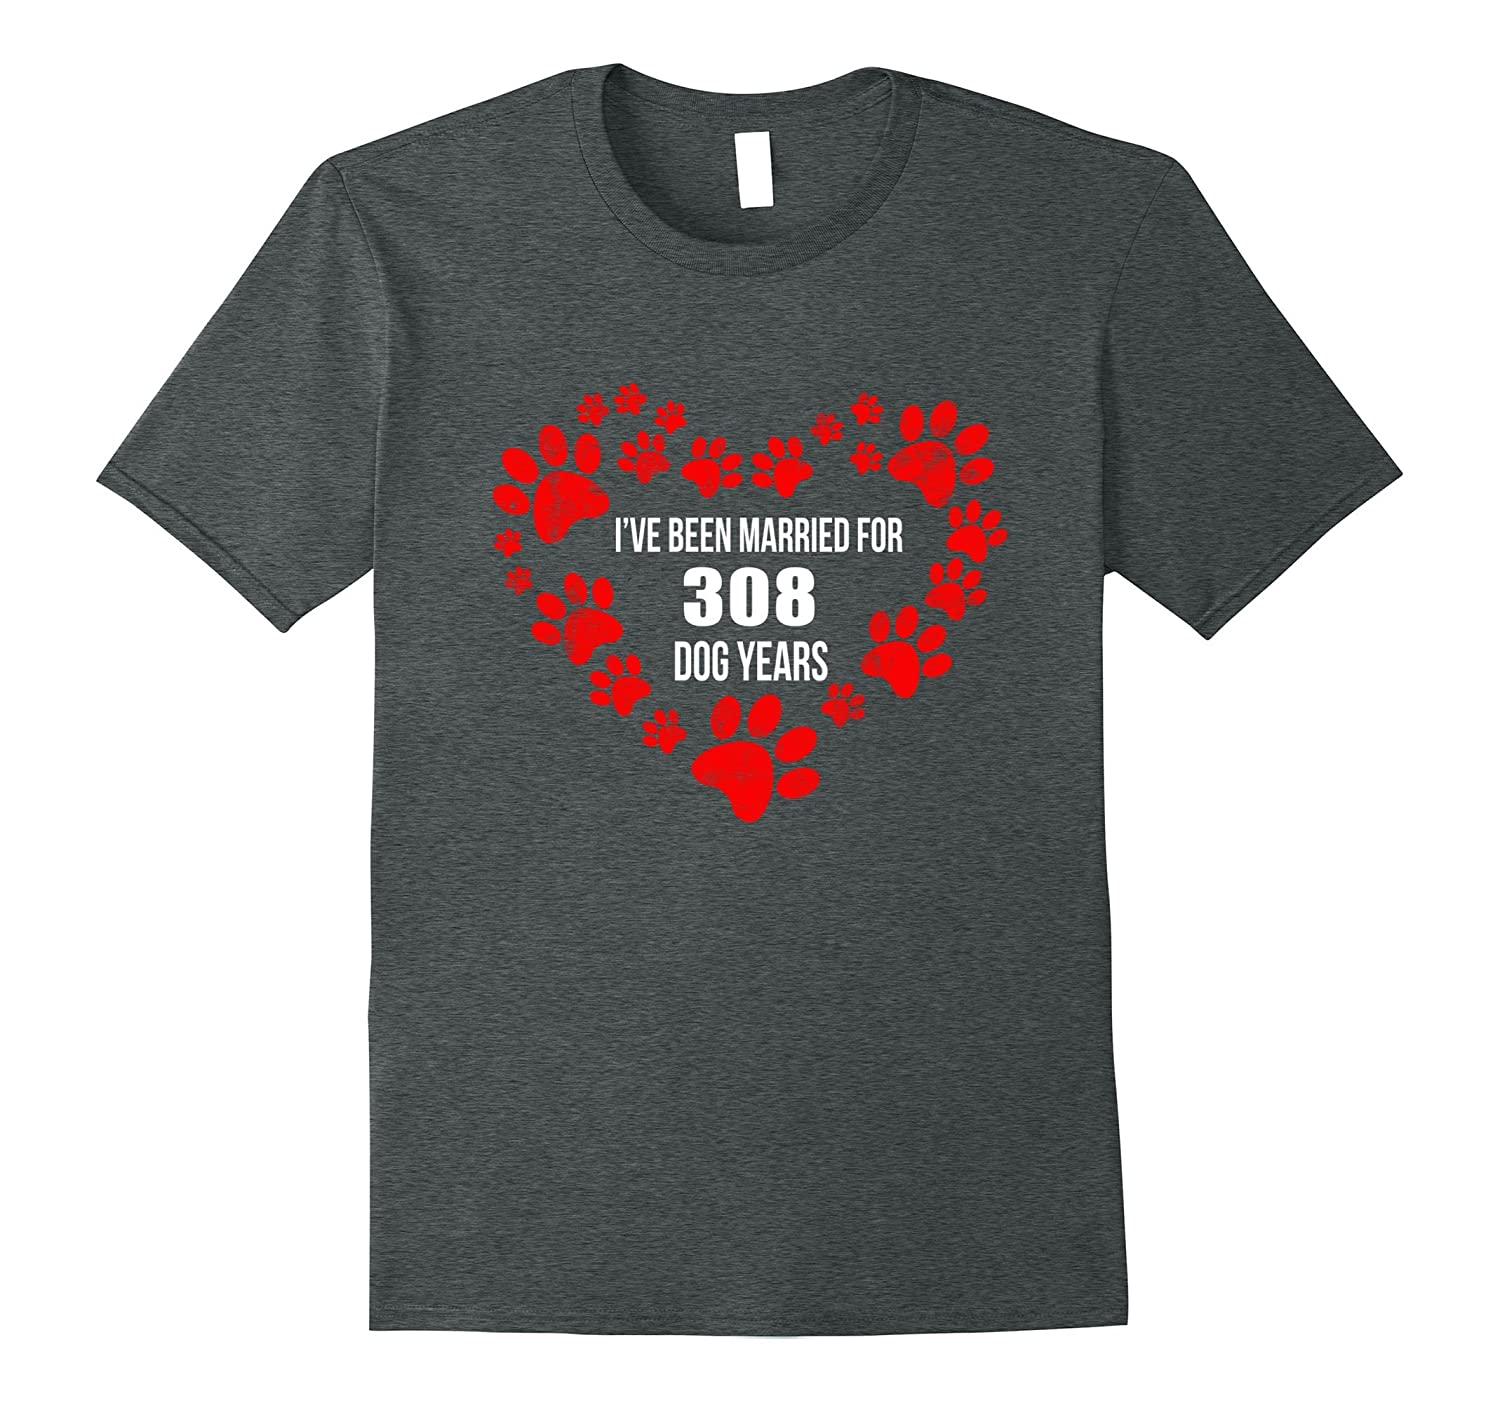 44th Wedding Anniversary T-Shirt 308 Dog Years Gift